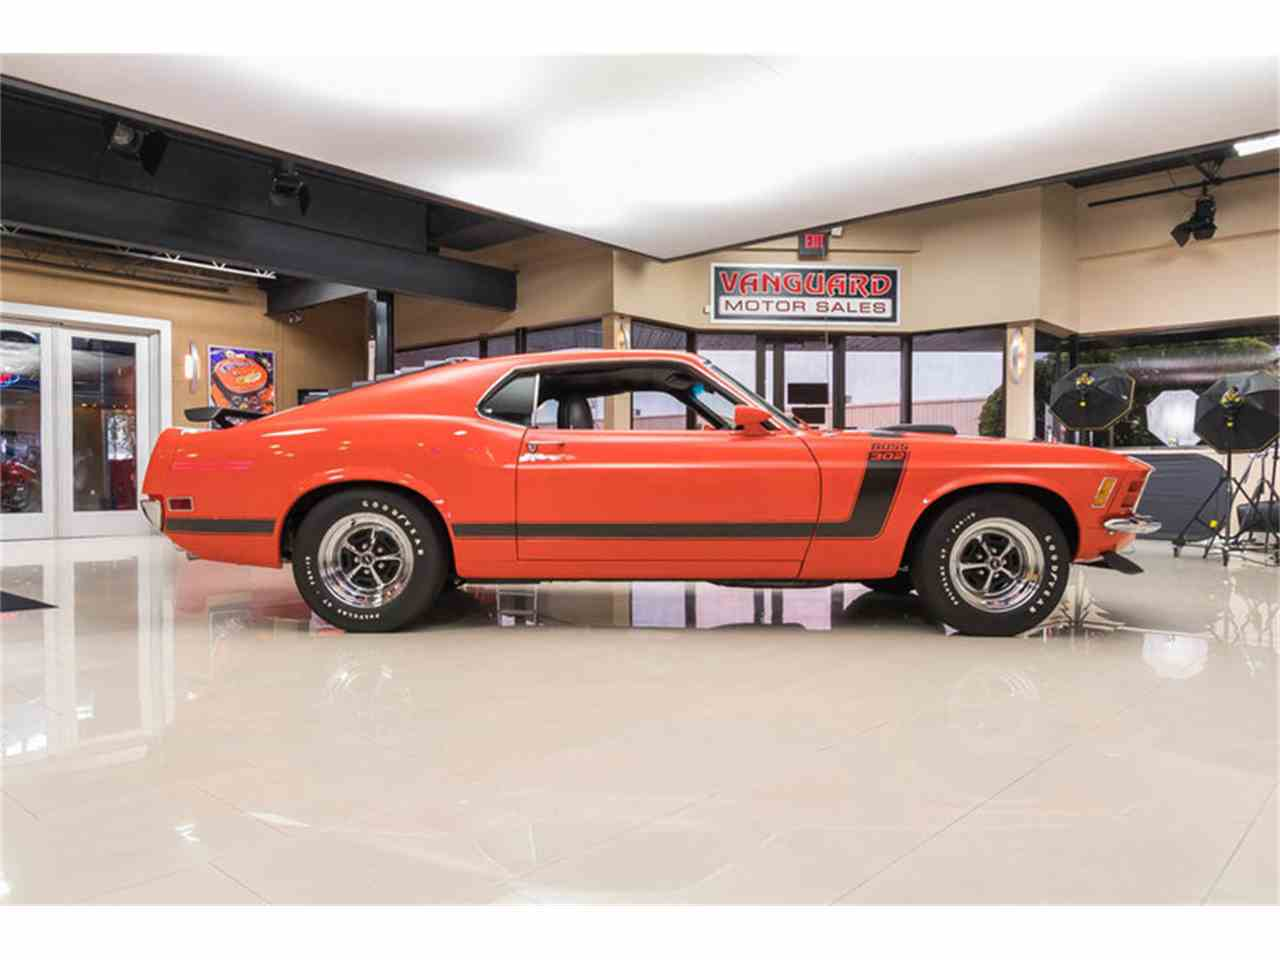 Large Picture of Classic 1970 Mustang located in Michigan - $89,900.00 Offered by Vanguard Motor Sales - GR9E